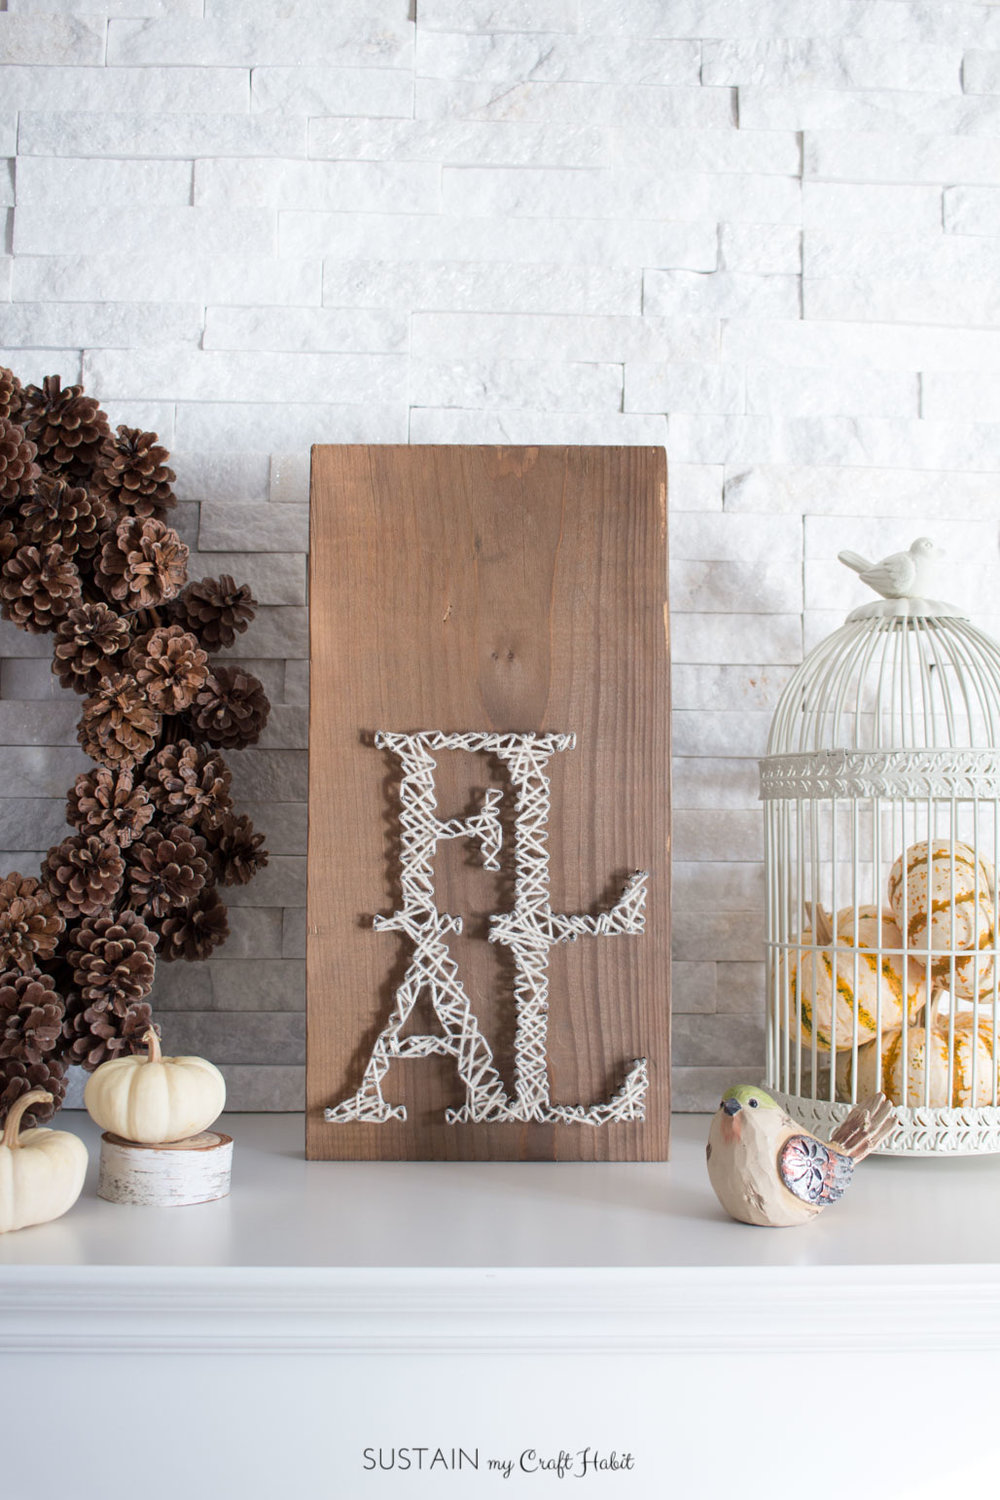 DIY Rustic String Art Fall Sign | Autumn Home Decor Idea with Tutorial